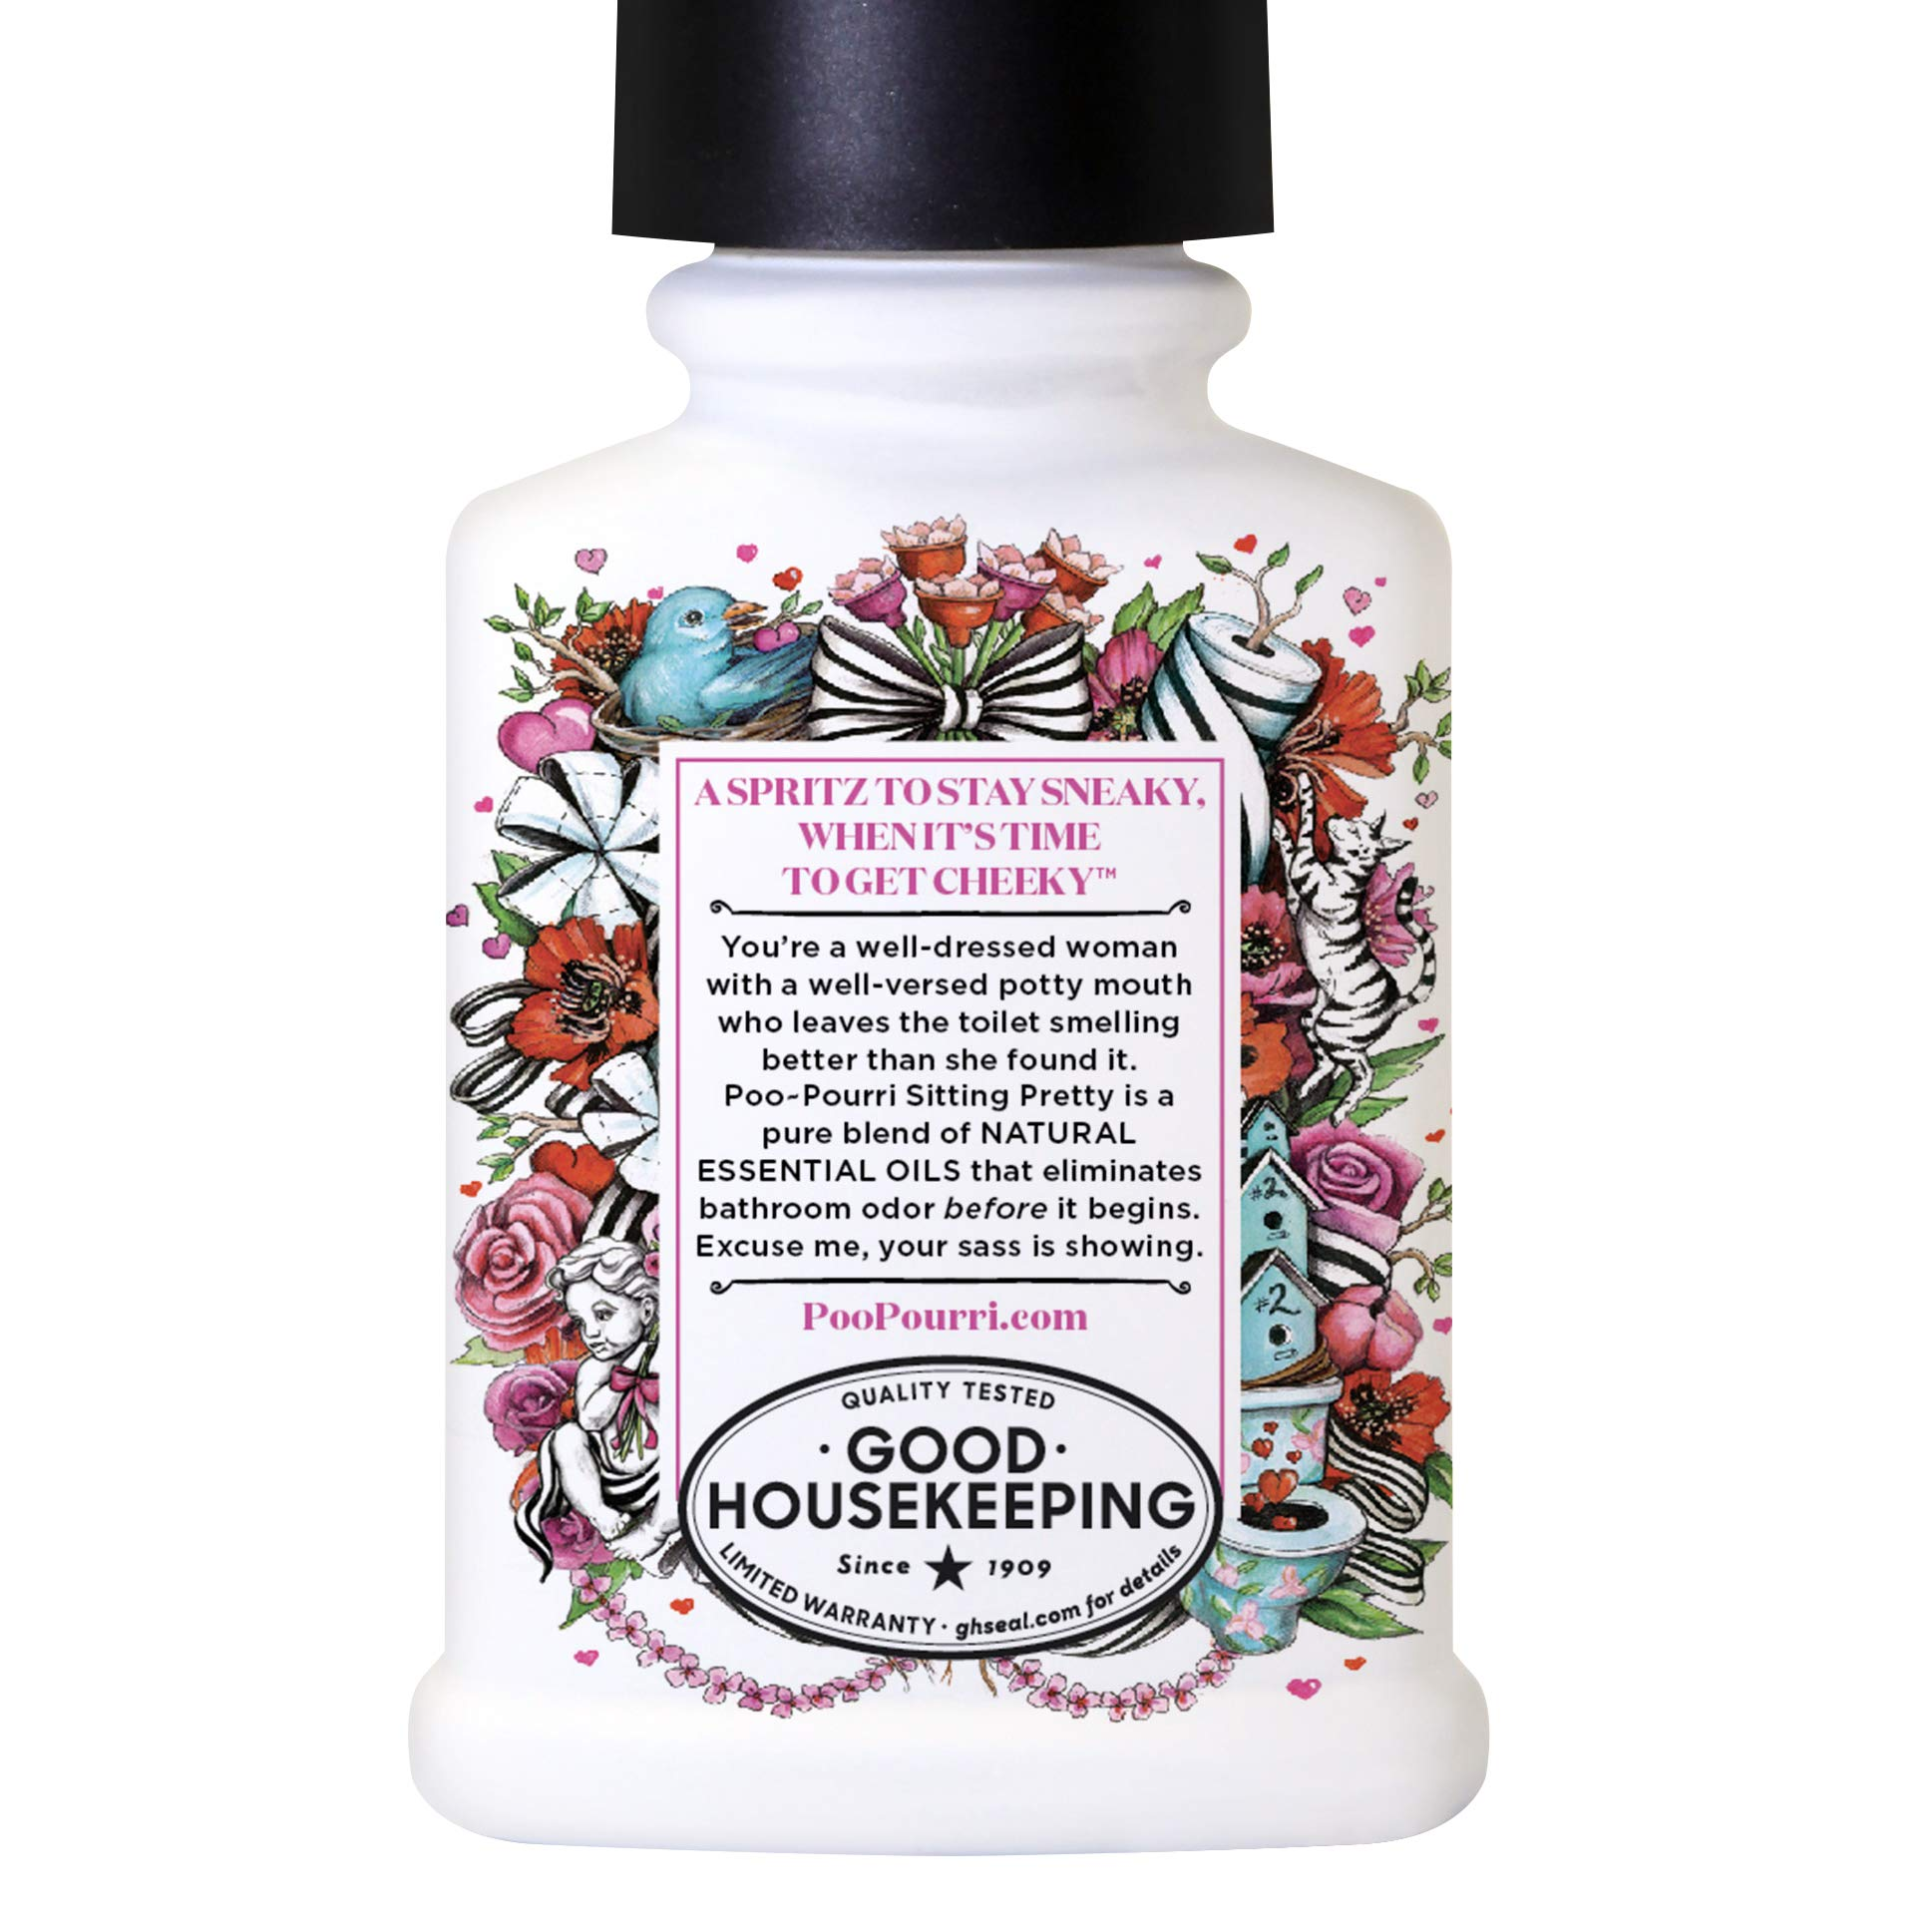 Poo-Pourri Before-You-Go Toilet Spray Bottle, 2 ounce Pack of 2 by Poo-Pourri (Image #5)